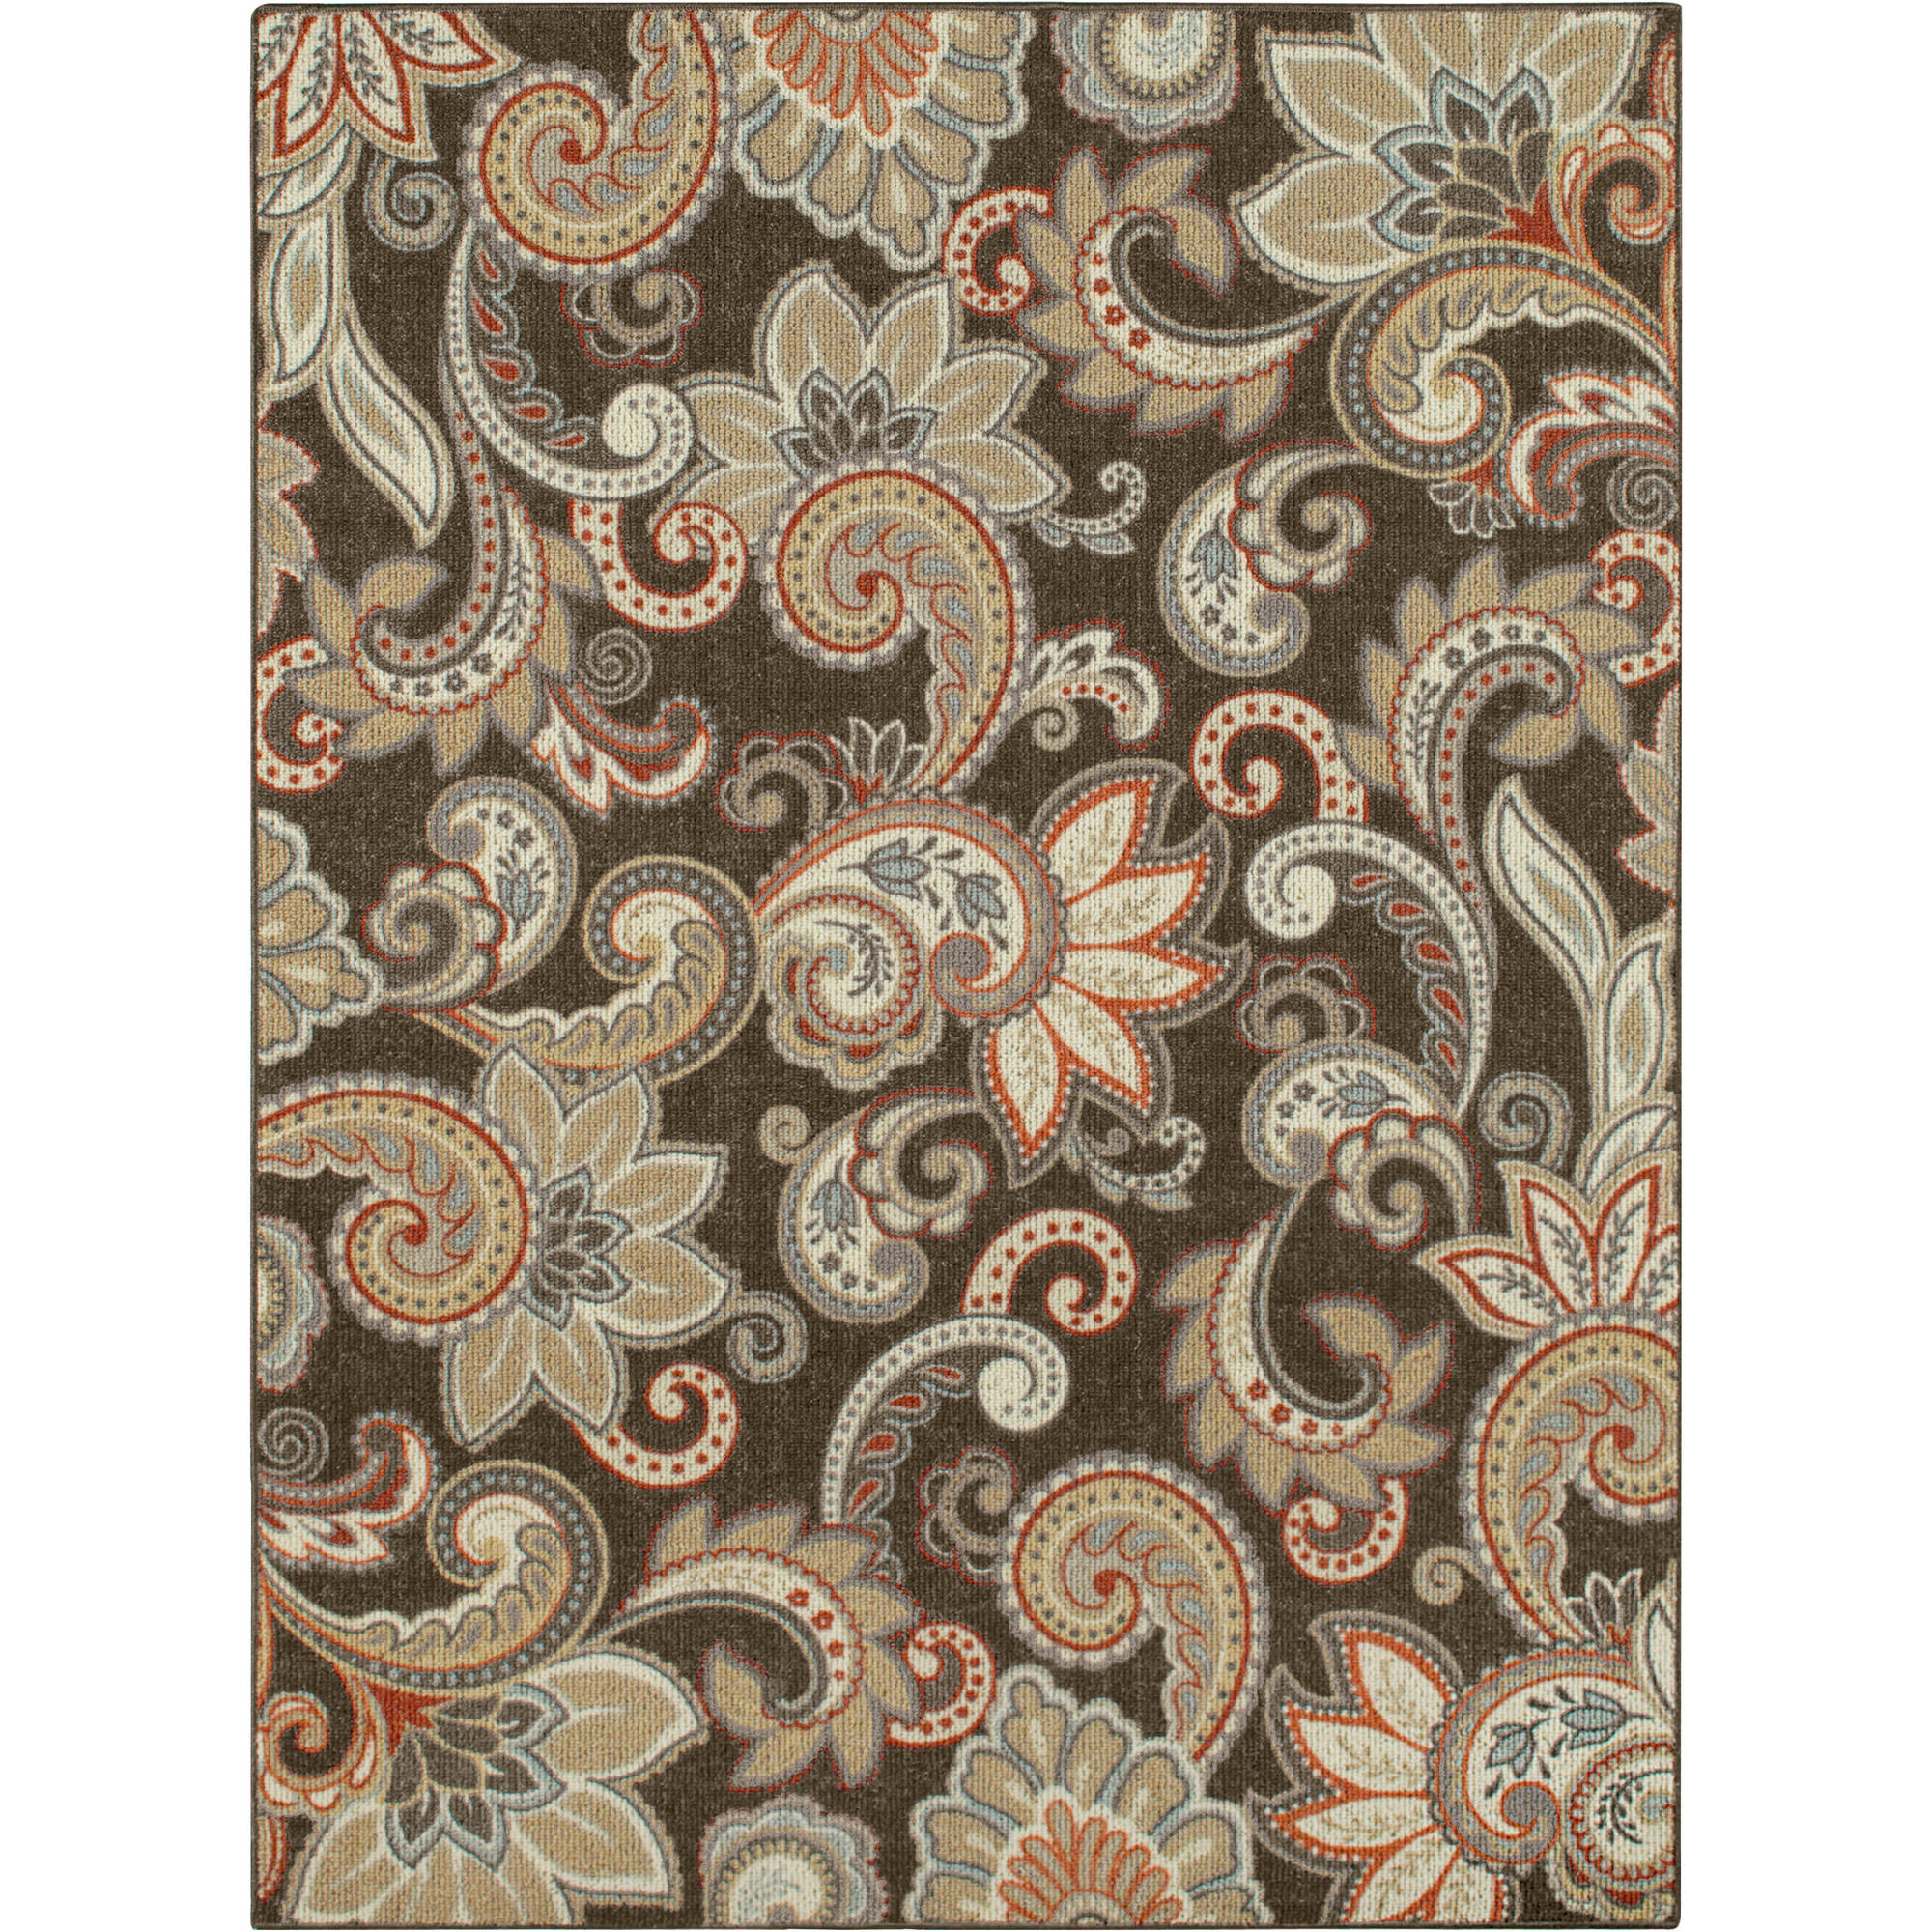 Better Homes And Gardens Paisley Berber Printed Area Rug Or Runner